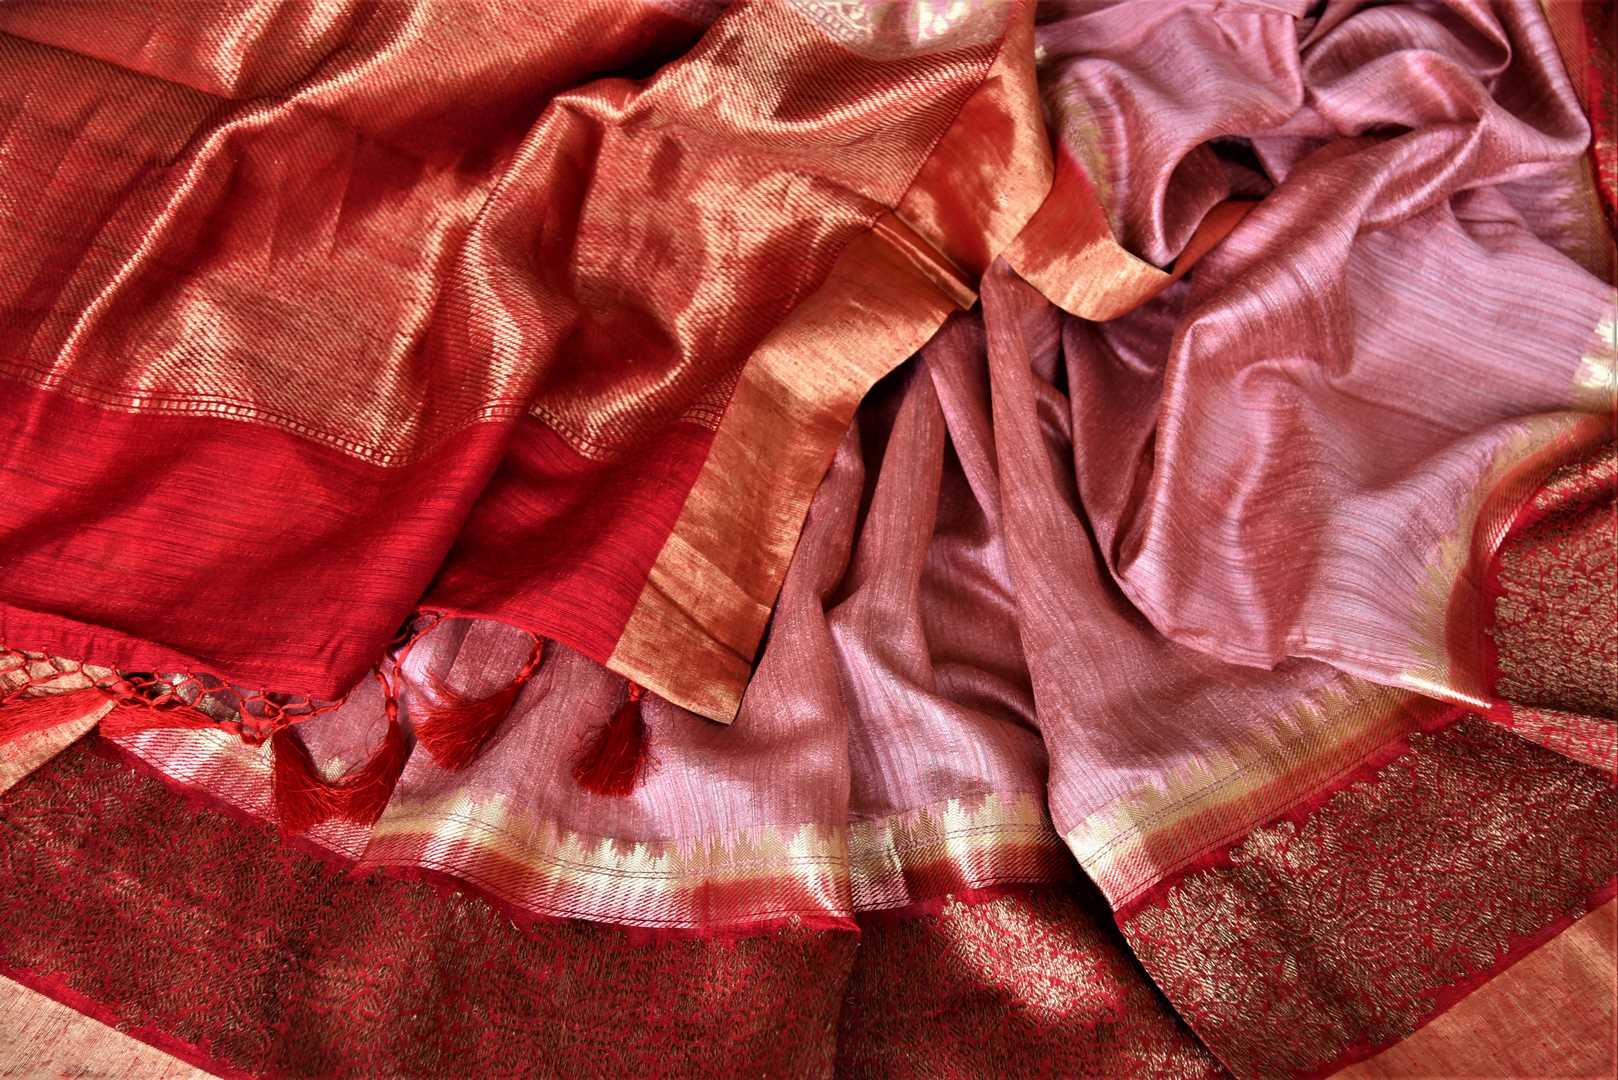 Shop beautiful dusty pink tussar Banarsi sari online in USA with red antique zari border. Choose tasteful handloom saris for special occasions from Pure Elegance. Our exclusive Indian fashion store has a myriad of exquisite pure silk saris, tussar sarees, Banarasi sarees for Indian women in USA.-details